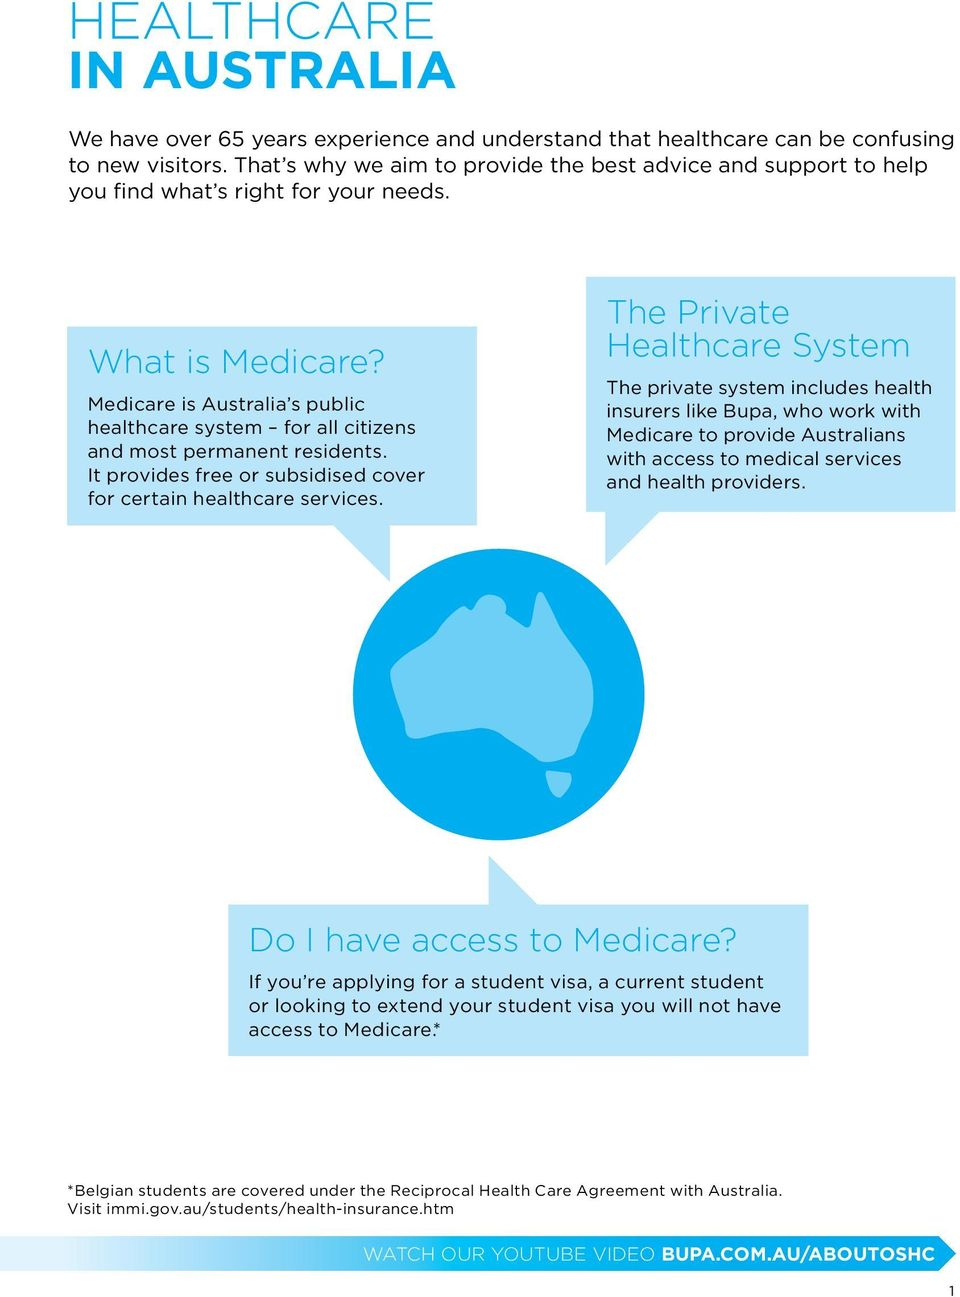 Medicare is Australia s public healthcare system for all citizens and most permanent residents. It provides free or subsidised cover for certain healthcare services.